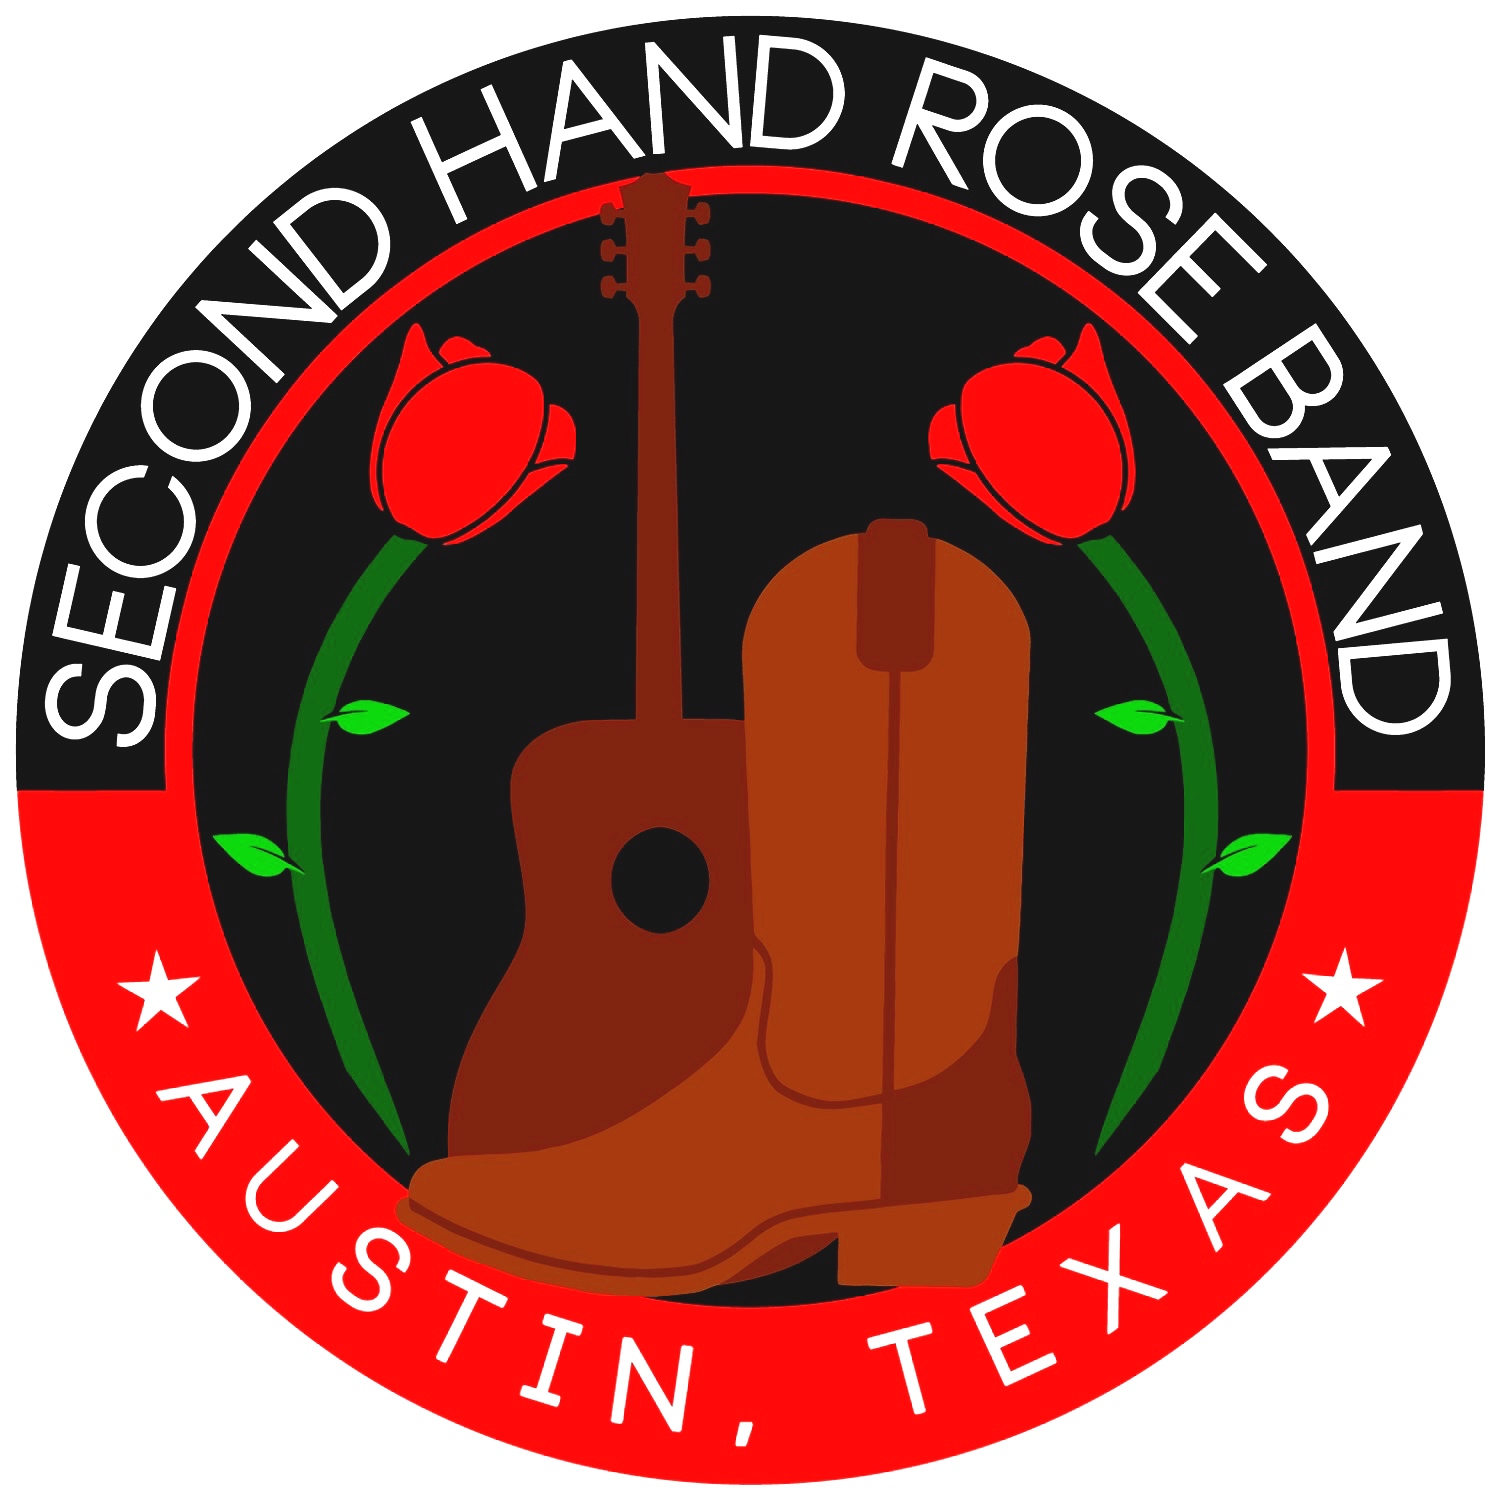 SecondHandRoseBand